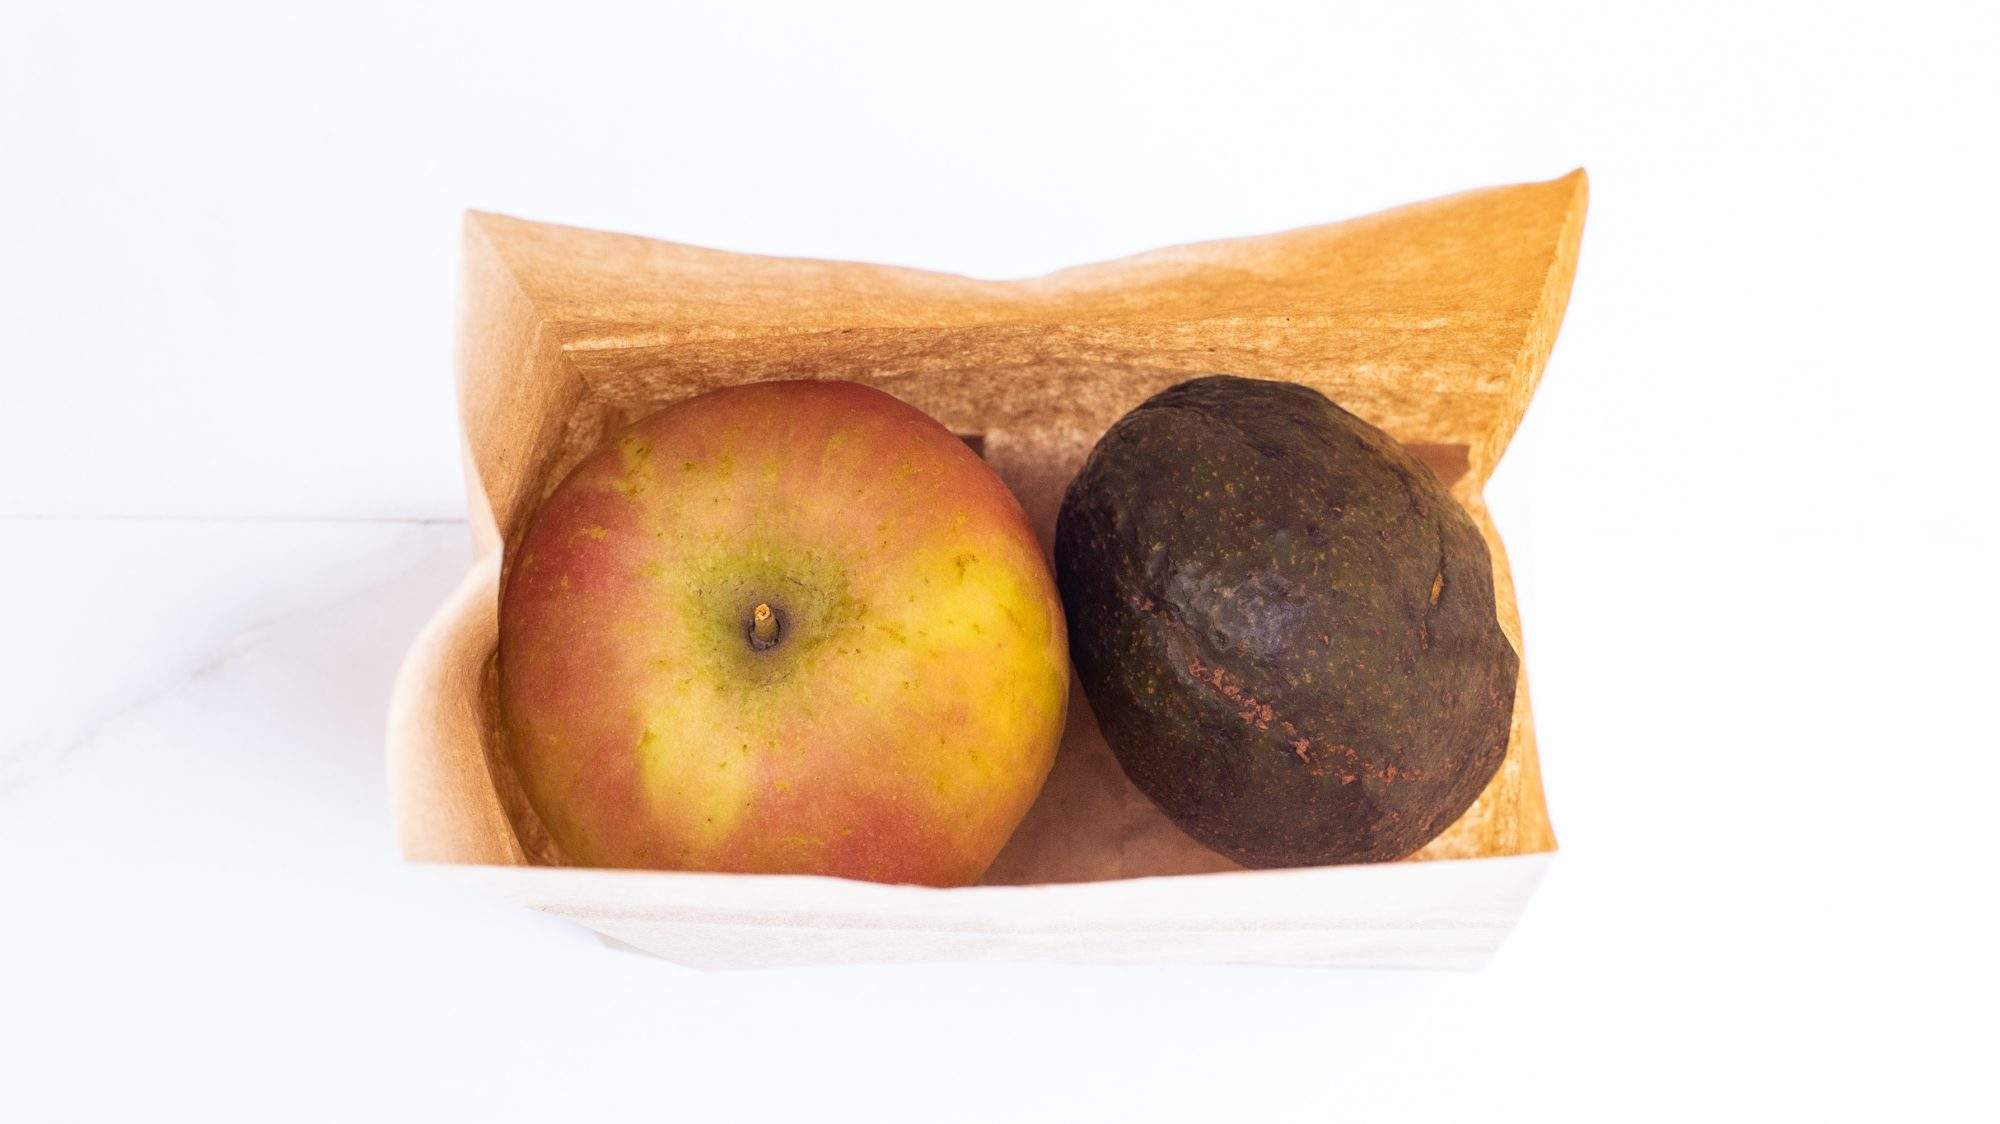 ripen-avocado-with-apple-in-paper-bag-2000